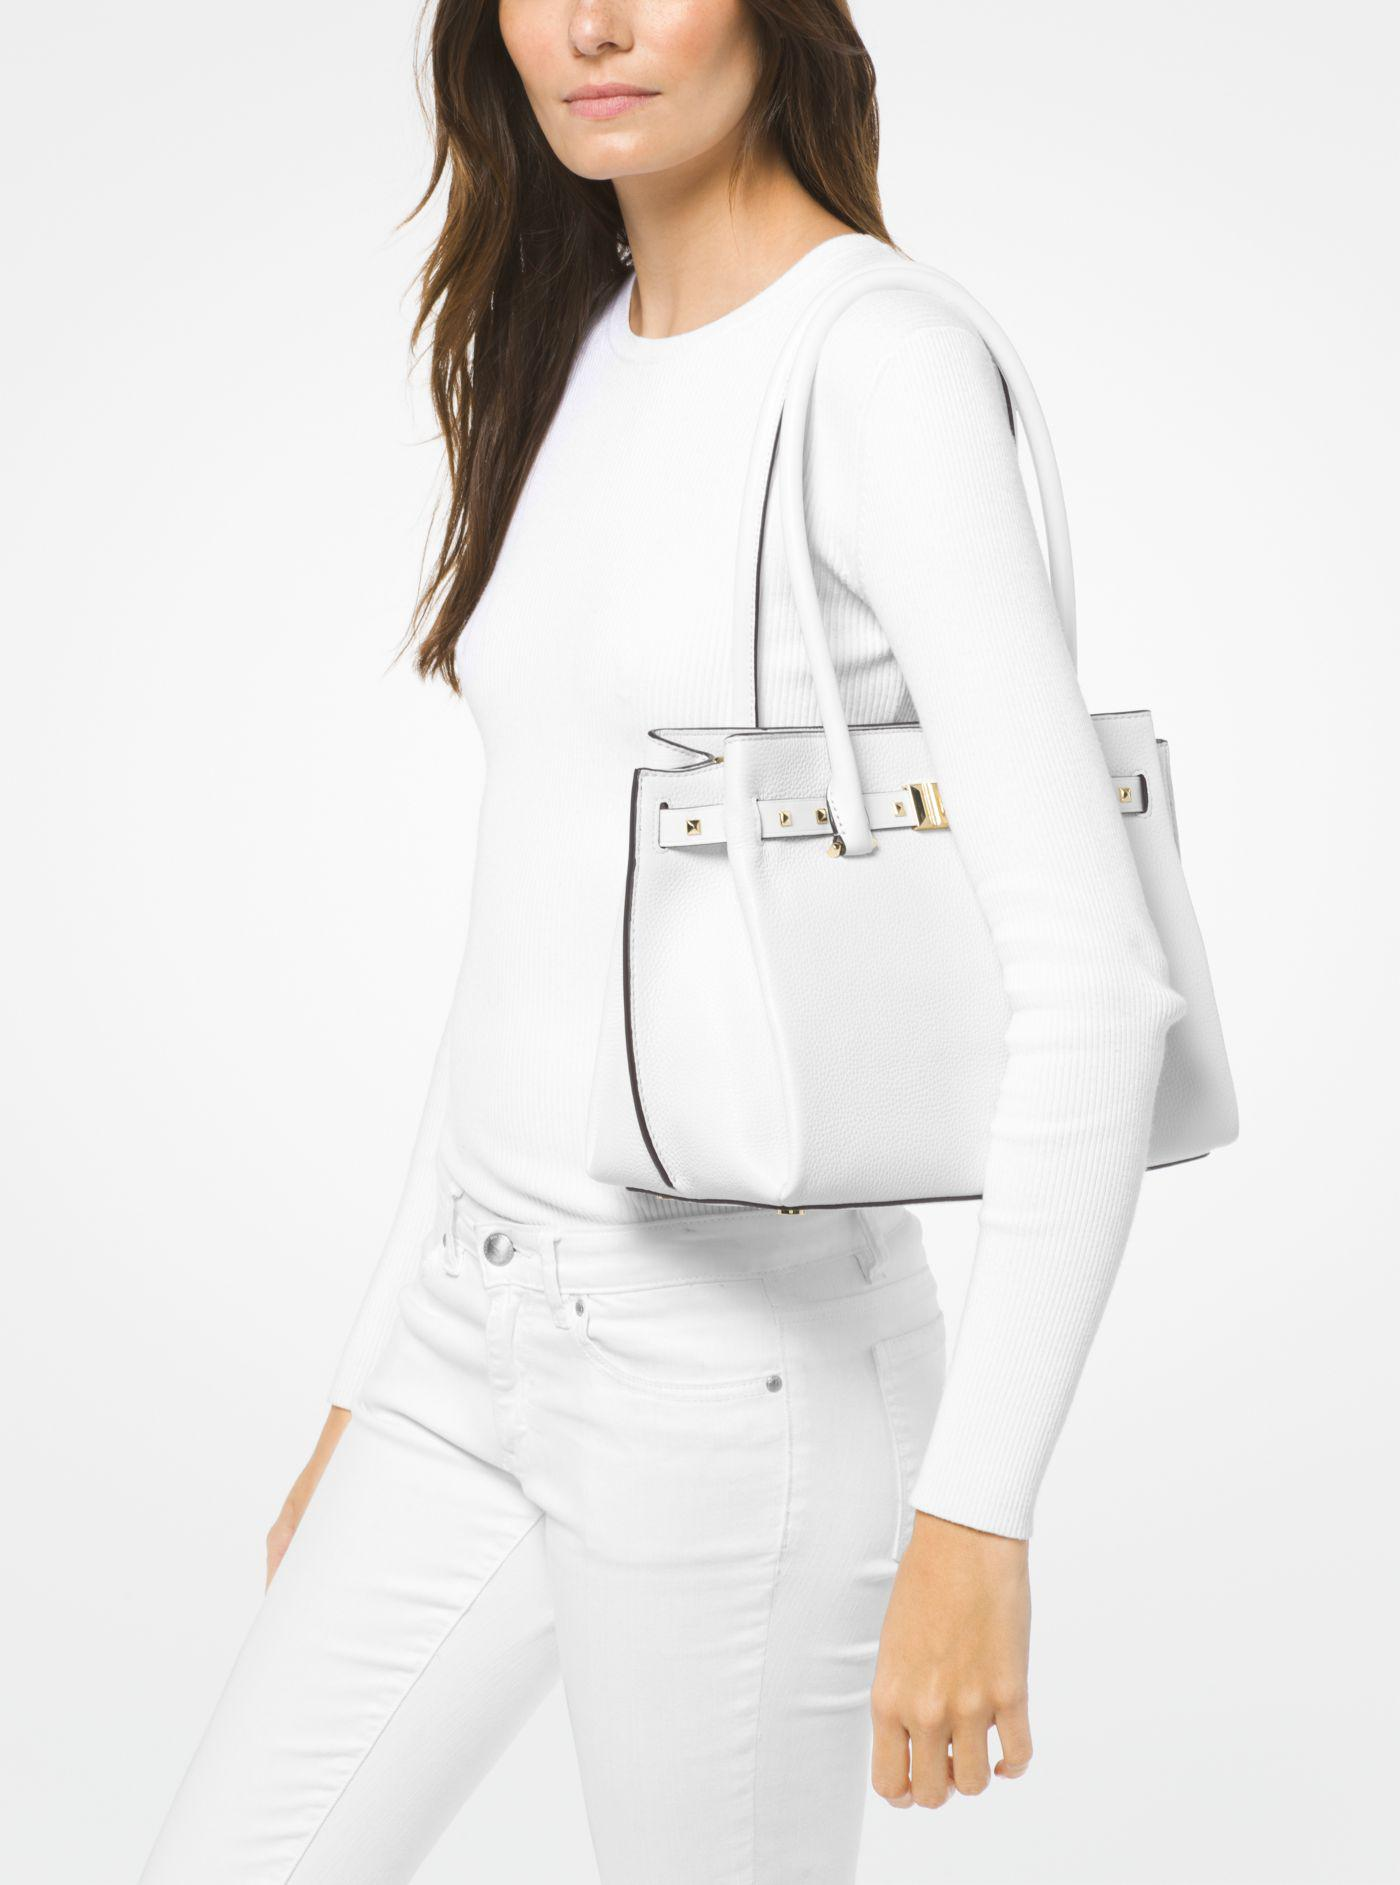 d2daef415f67 Michael Kors Addison Medium Pebbled Leather Tote Bag in White - Lyst